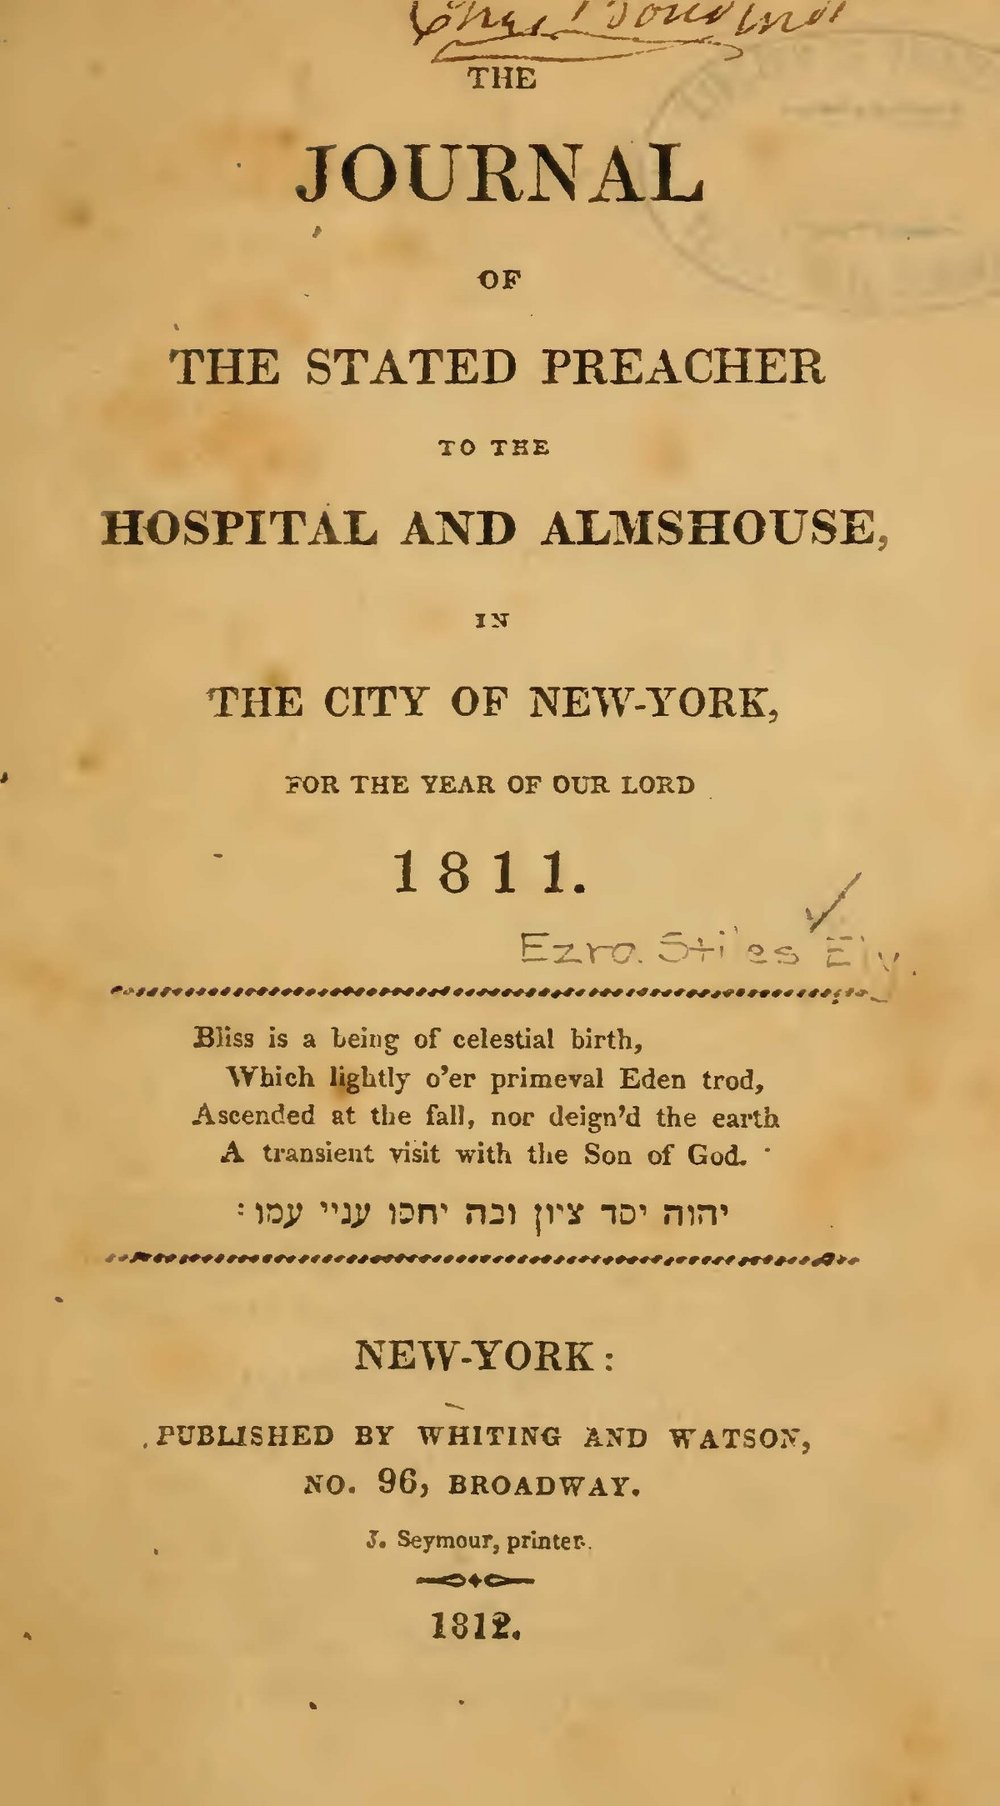 Ely, Ezra Stiles, The Journal of the Stated Preacher to the Hospital and Almshouse Title Page.jpg